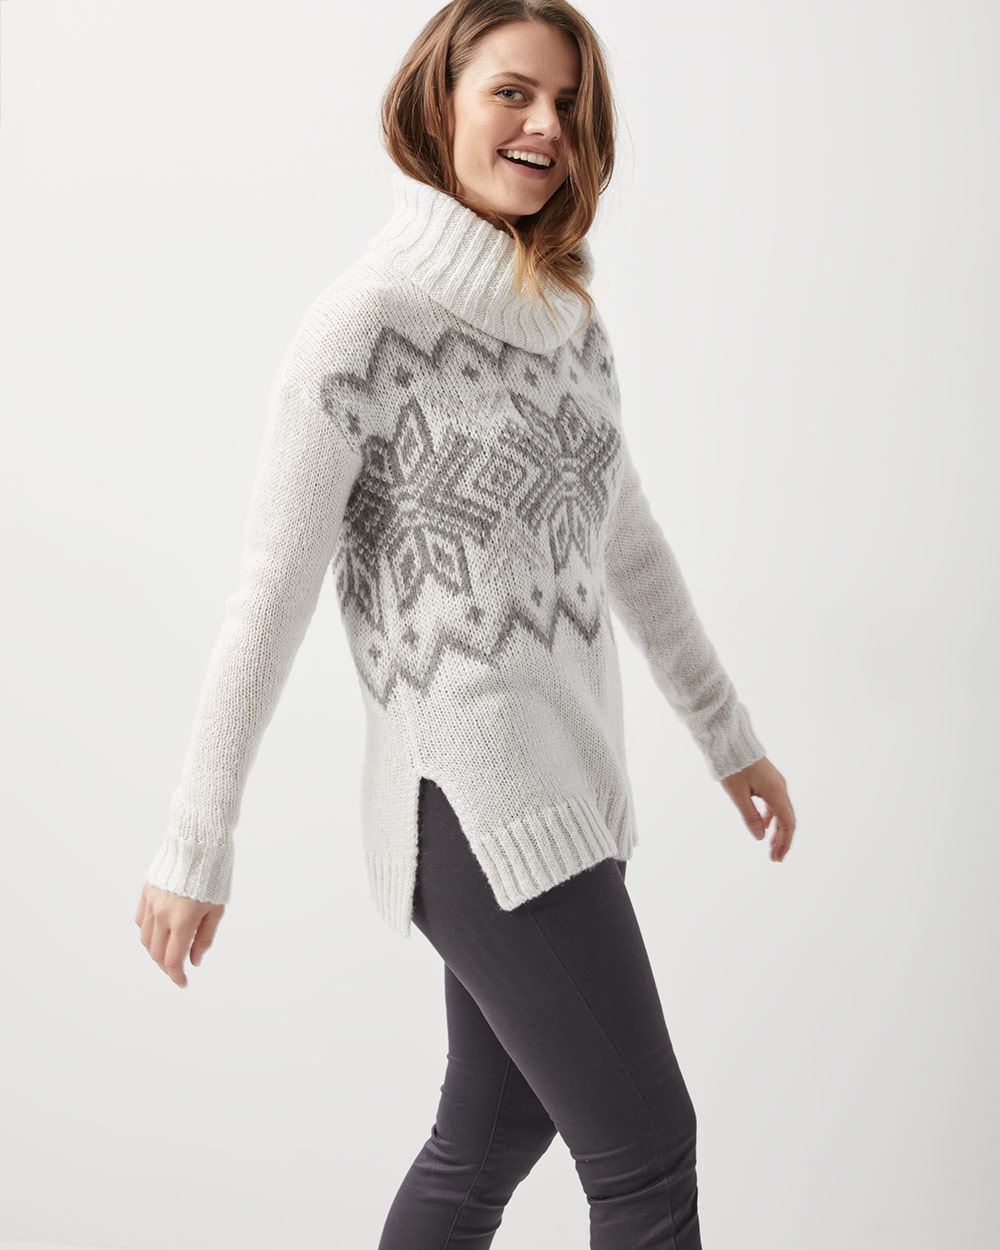 Fair isle loose-fit sweater